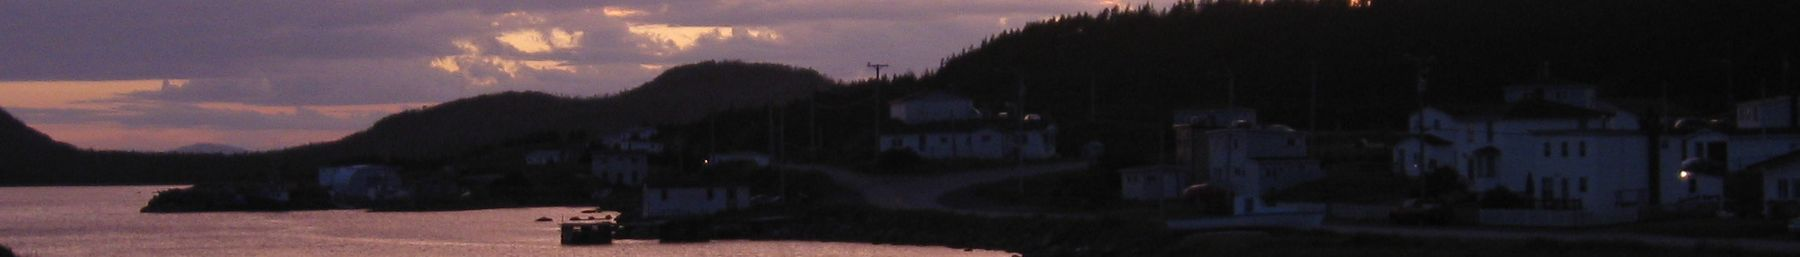 Fox Harbour (Newfoundland) banner Sunset.jpg